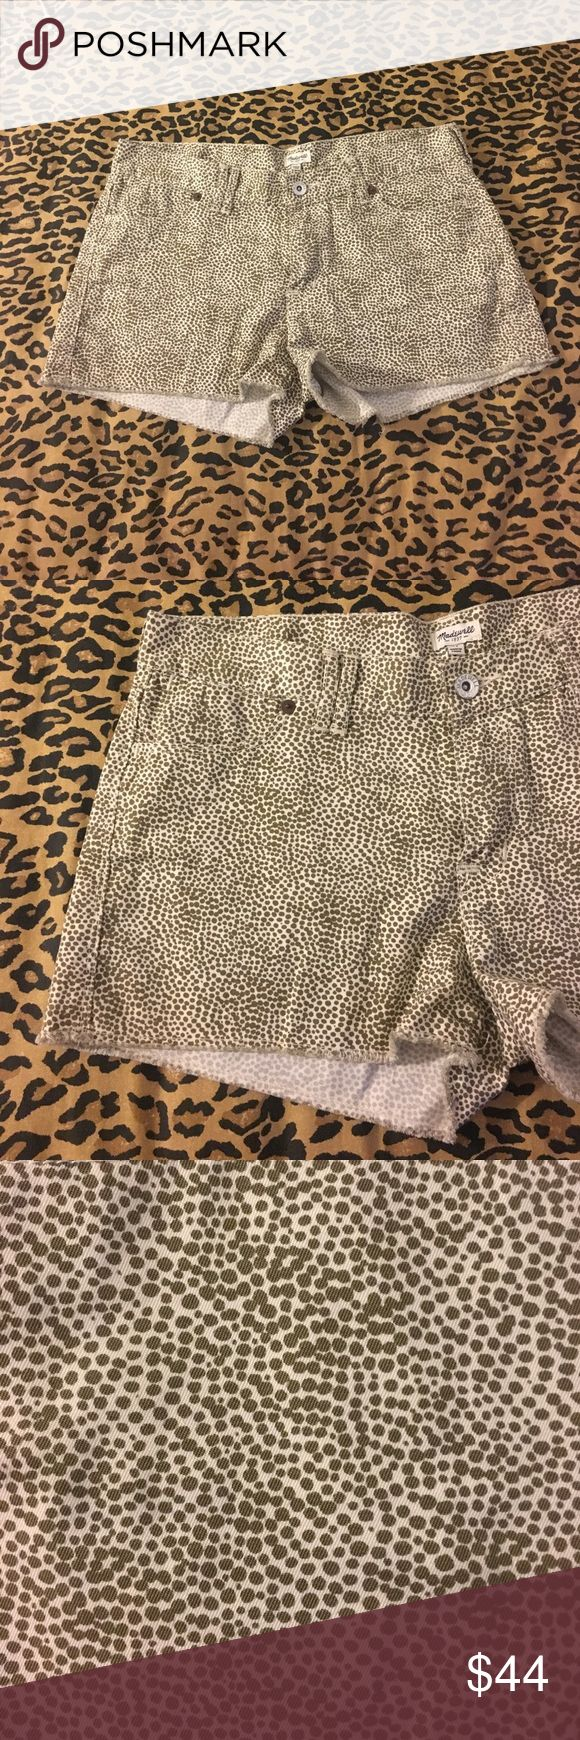 Mqdewell cheetah shorts size 27 frayed Gently uSed no holes or stains super cute on perfect for spring and summmer Madewell Shorts